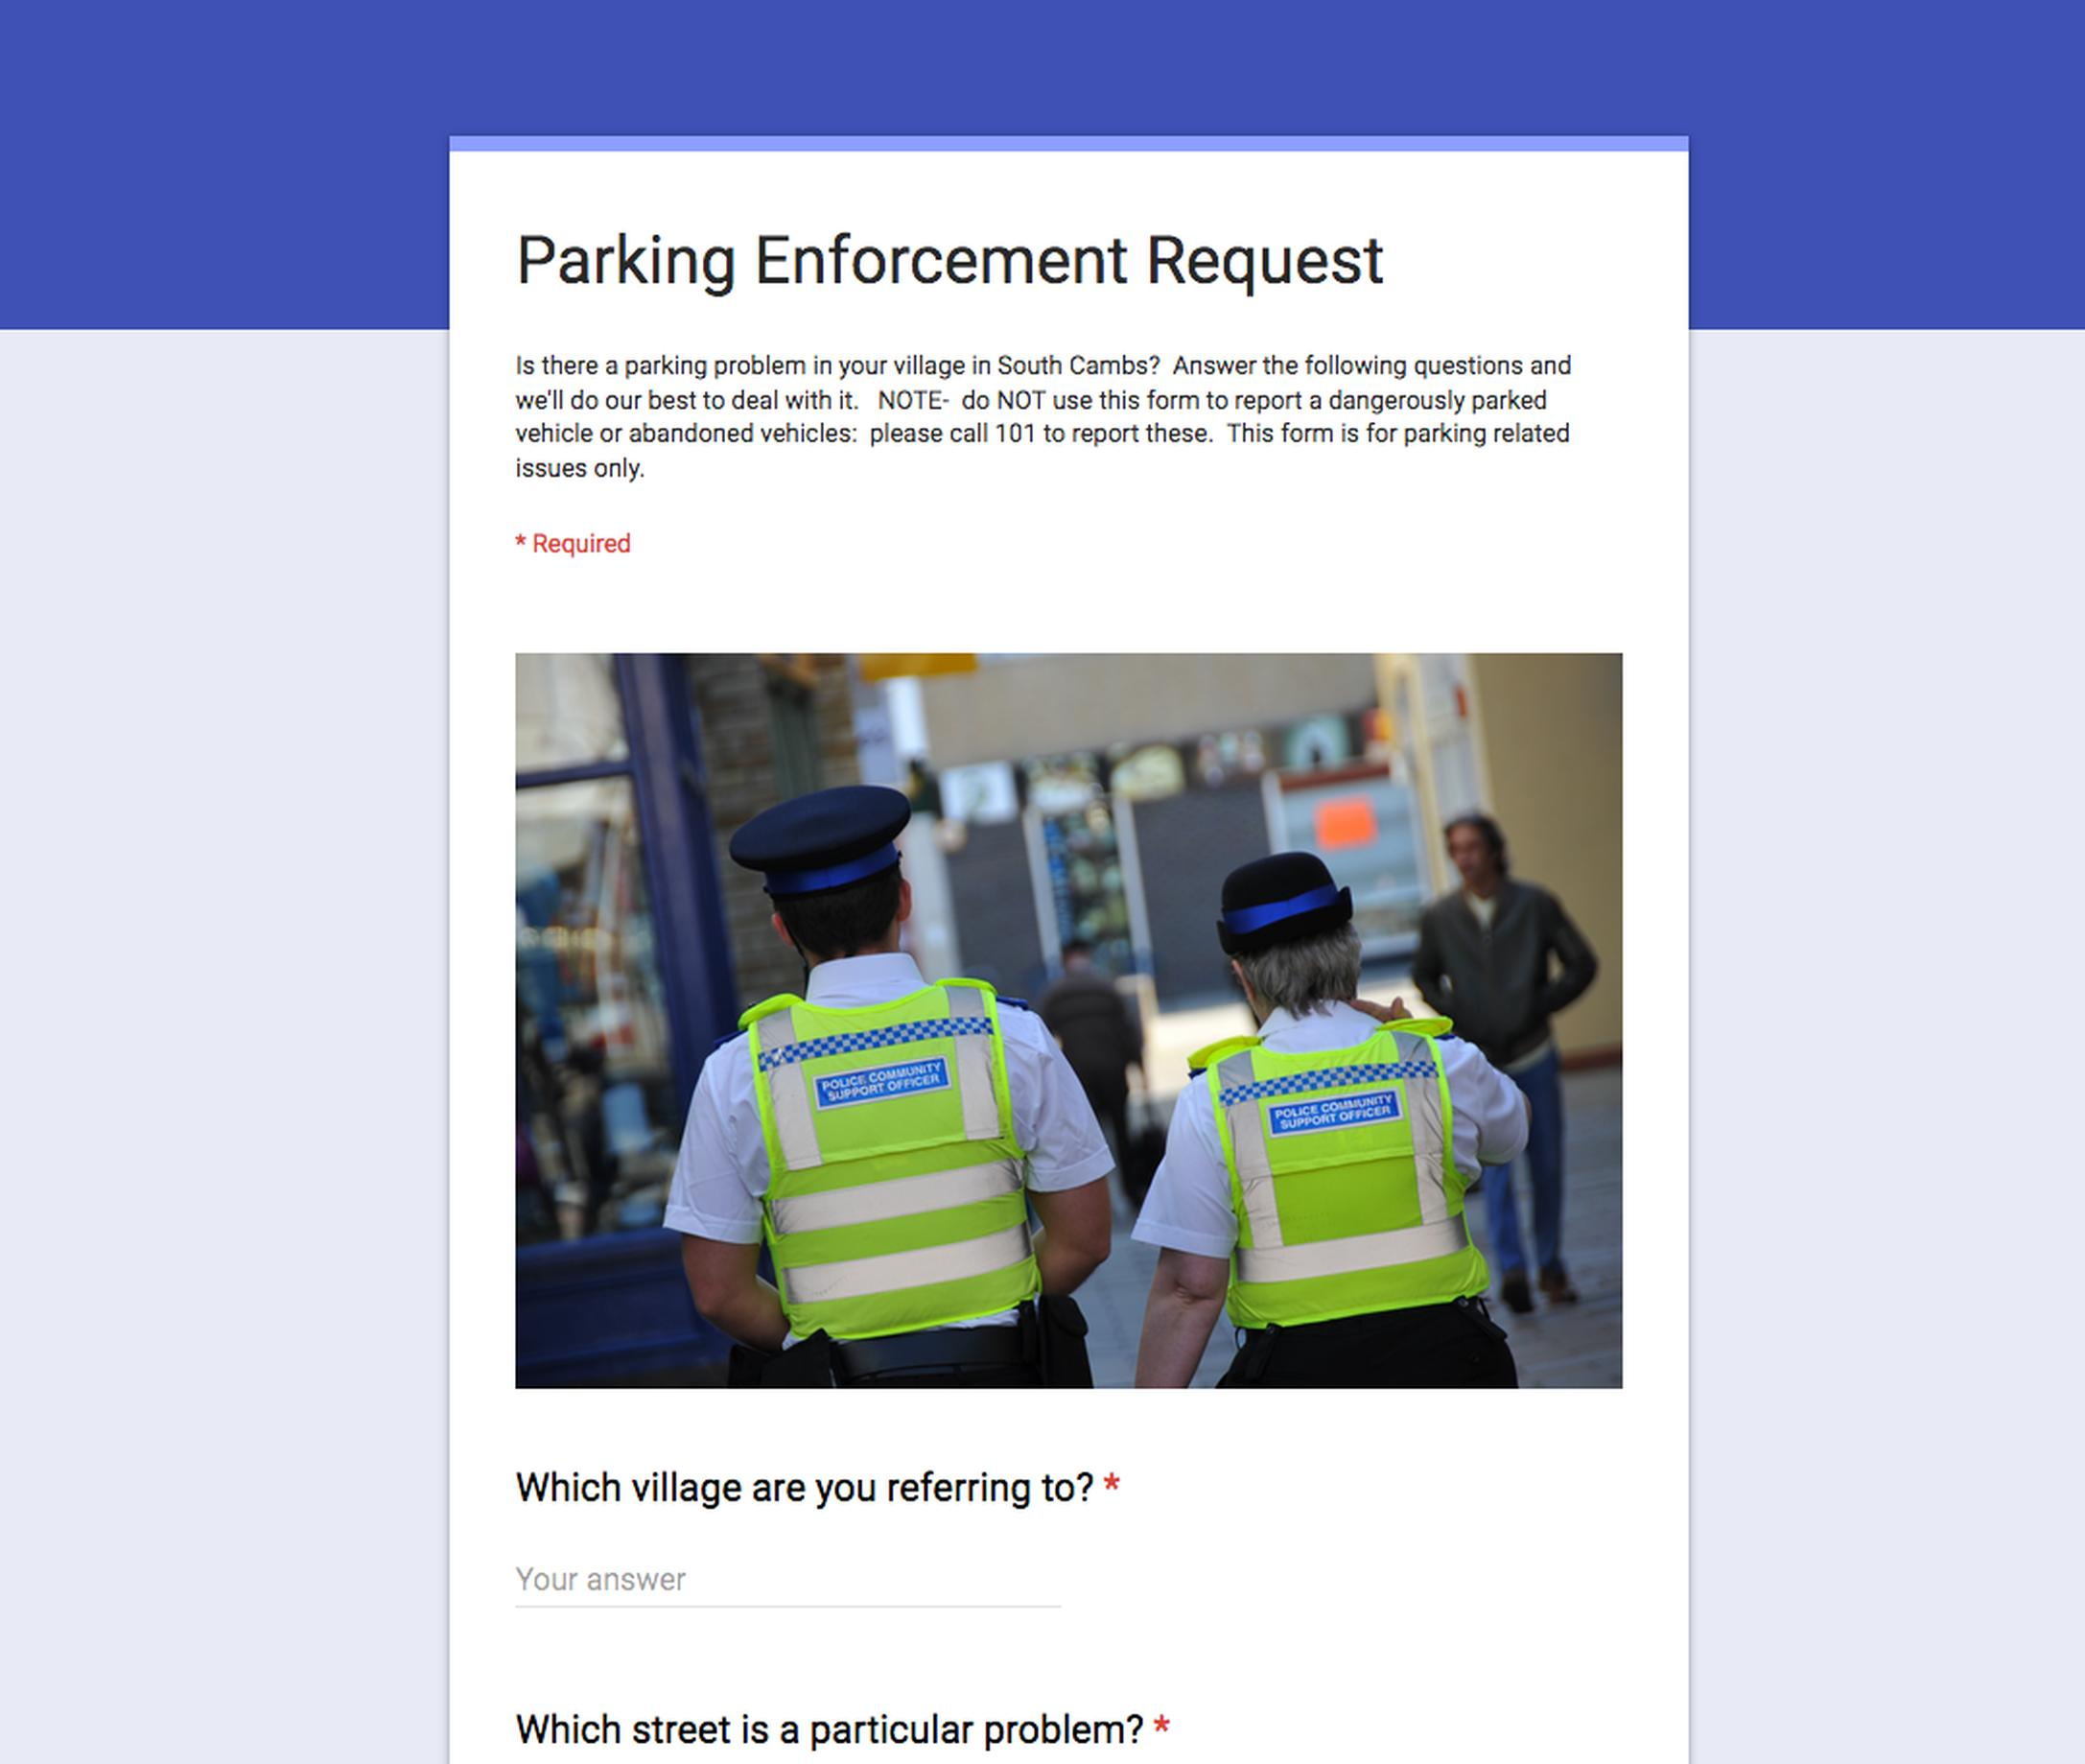 Police ask for bad parking reports